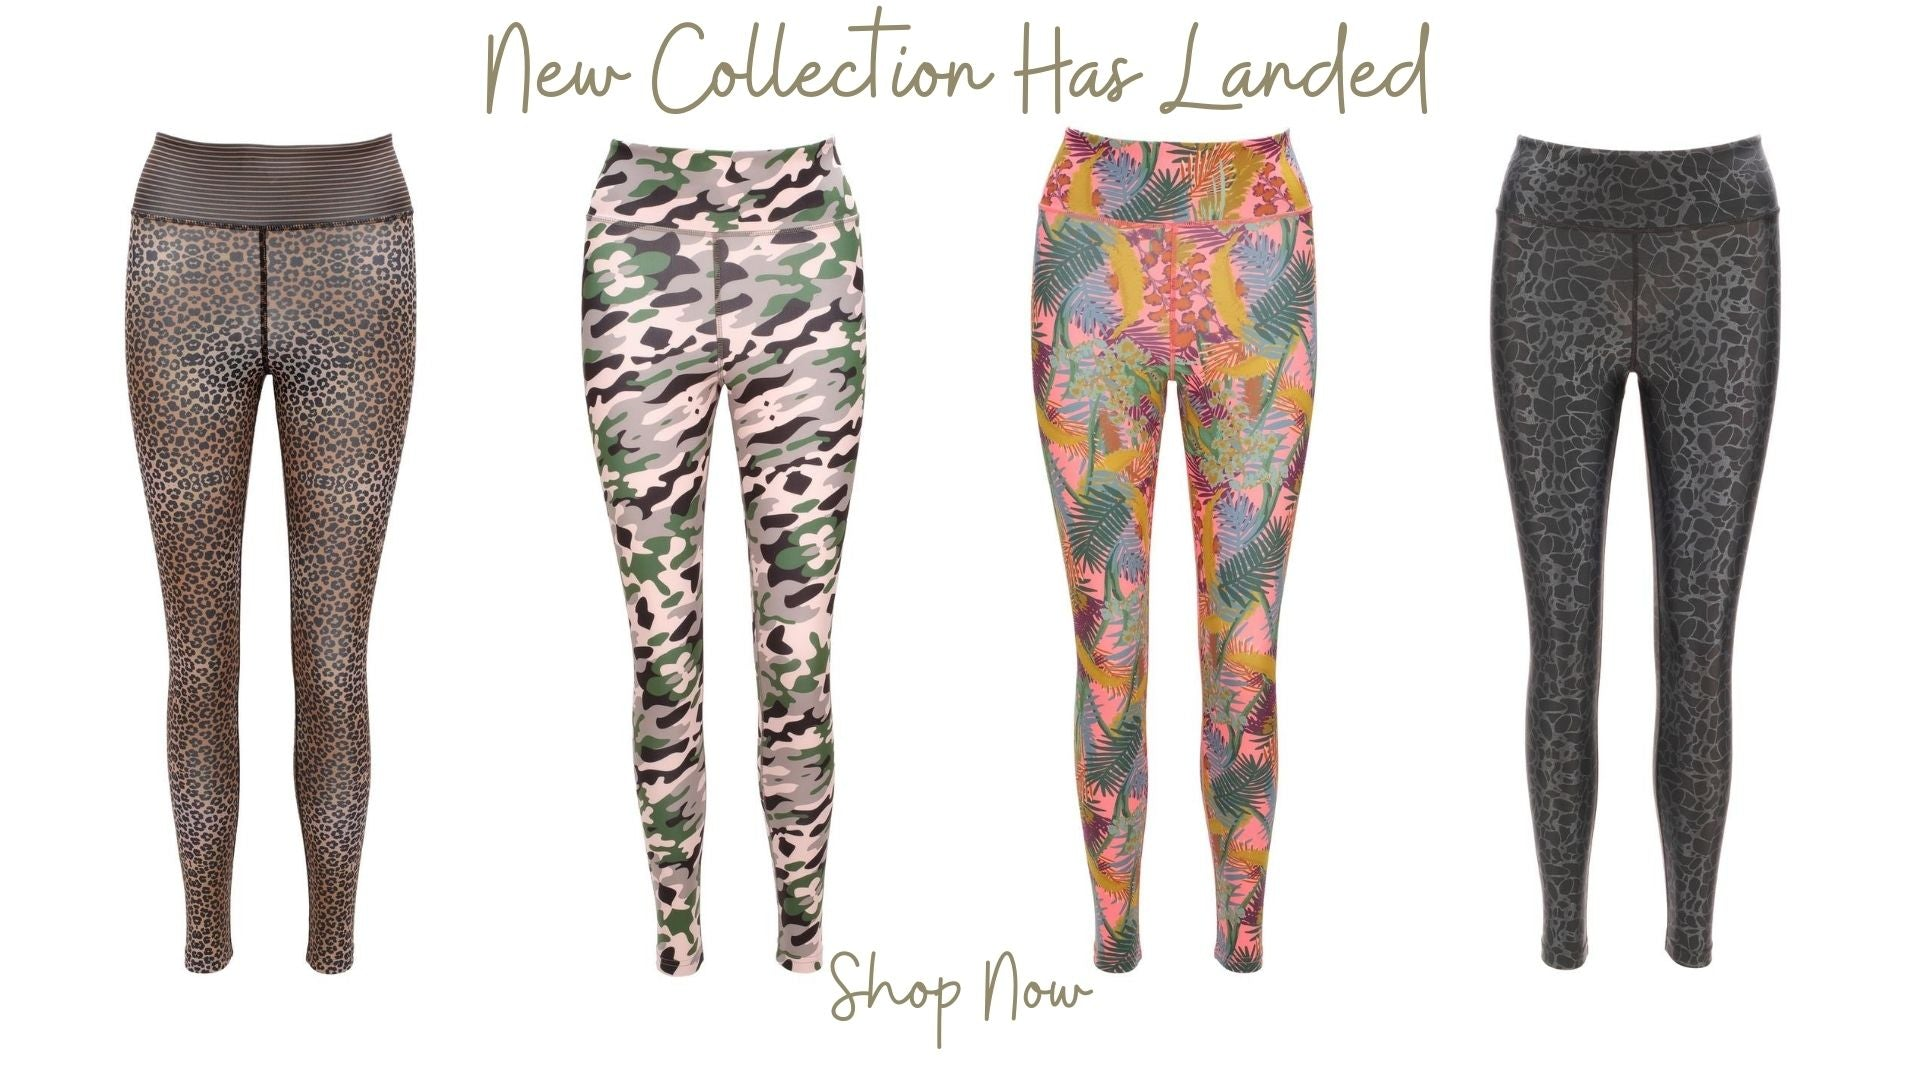 Blossom Yoga Wear New Fitness Leggings have arrived